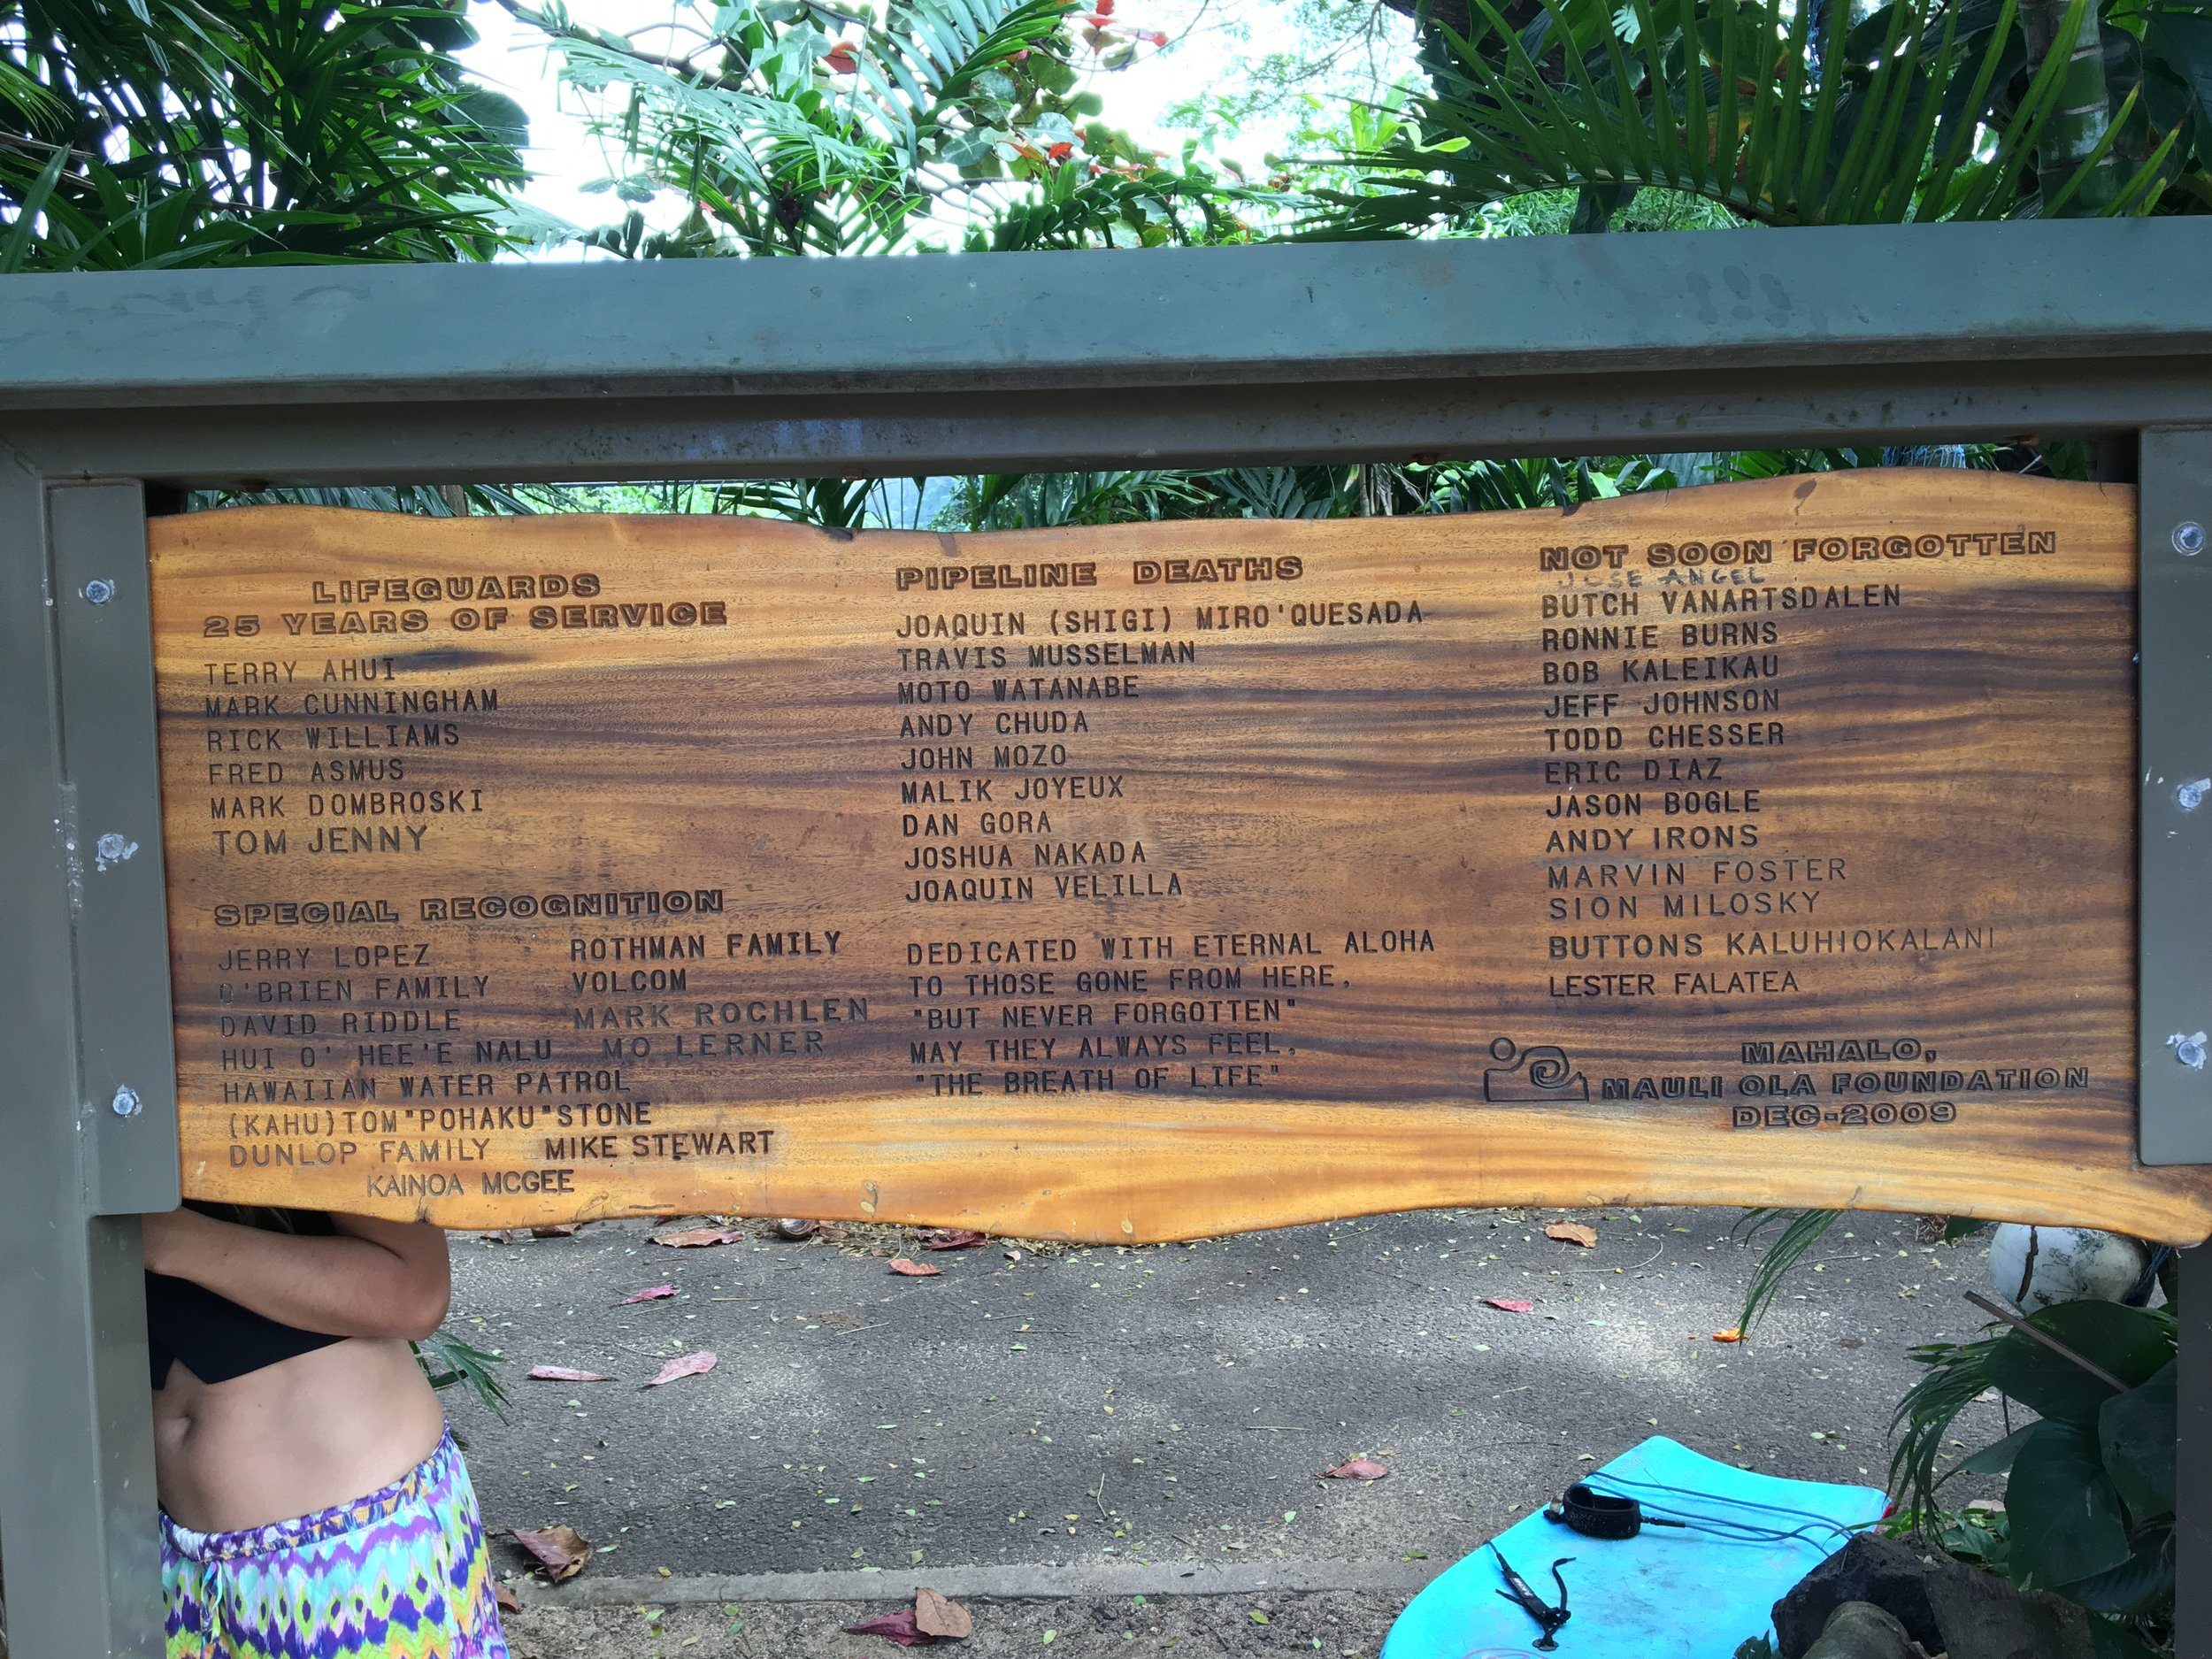 The reverse of the plaque lists all the deaths at Pipeline and the lifegaurds who have dedicated their lives to saving people there. While we were looking at the plaque two little boys ran up to us and pointed to some names and told us that they were their uncles. The next Pipemasters no doubt;